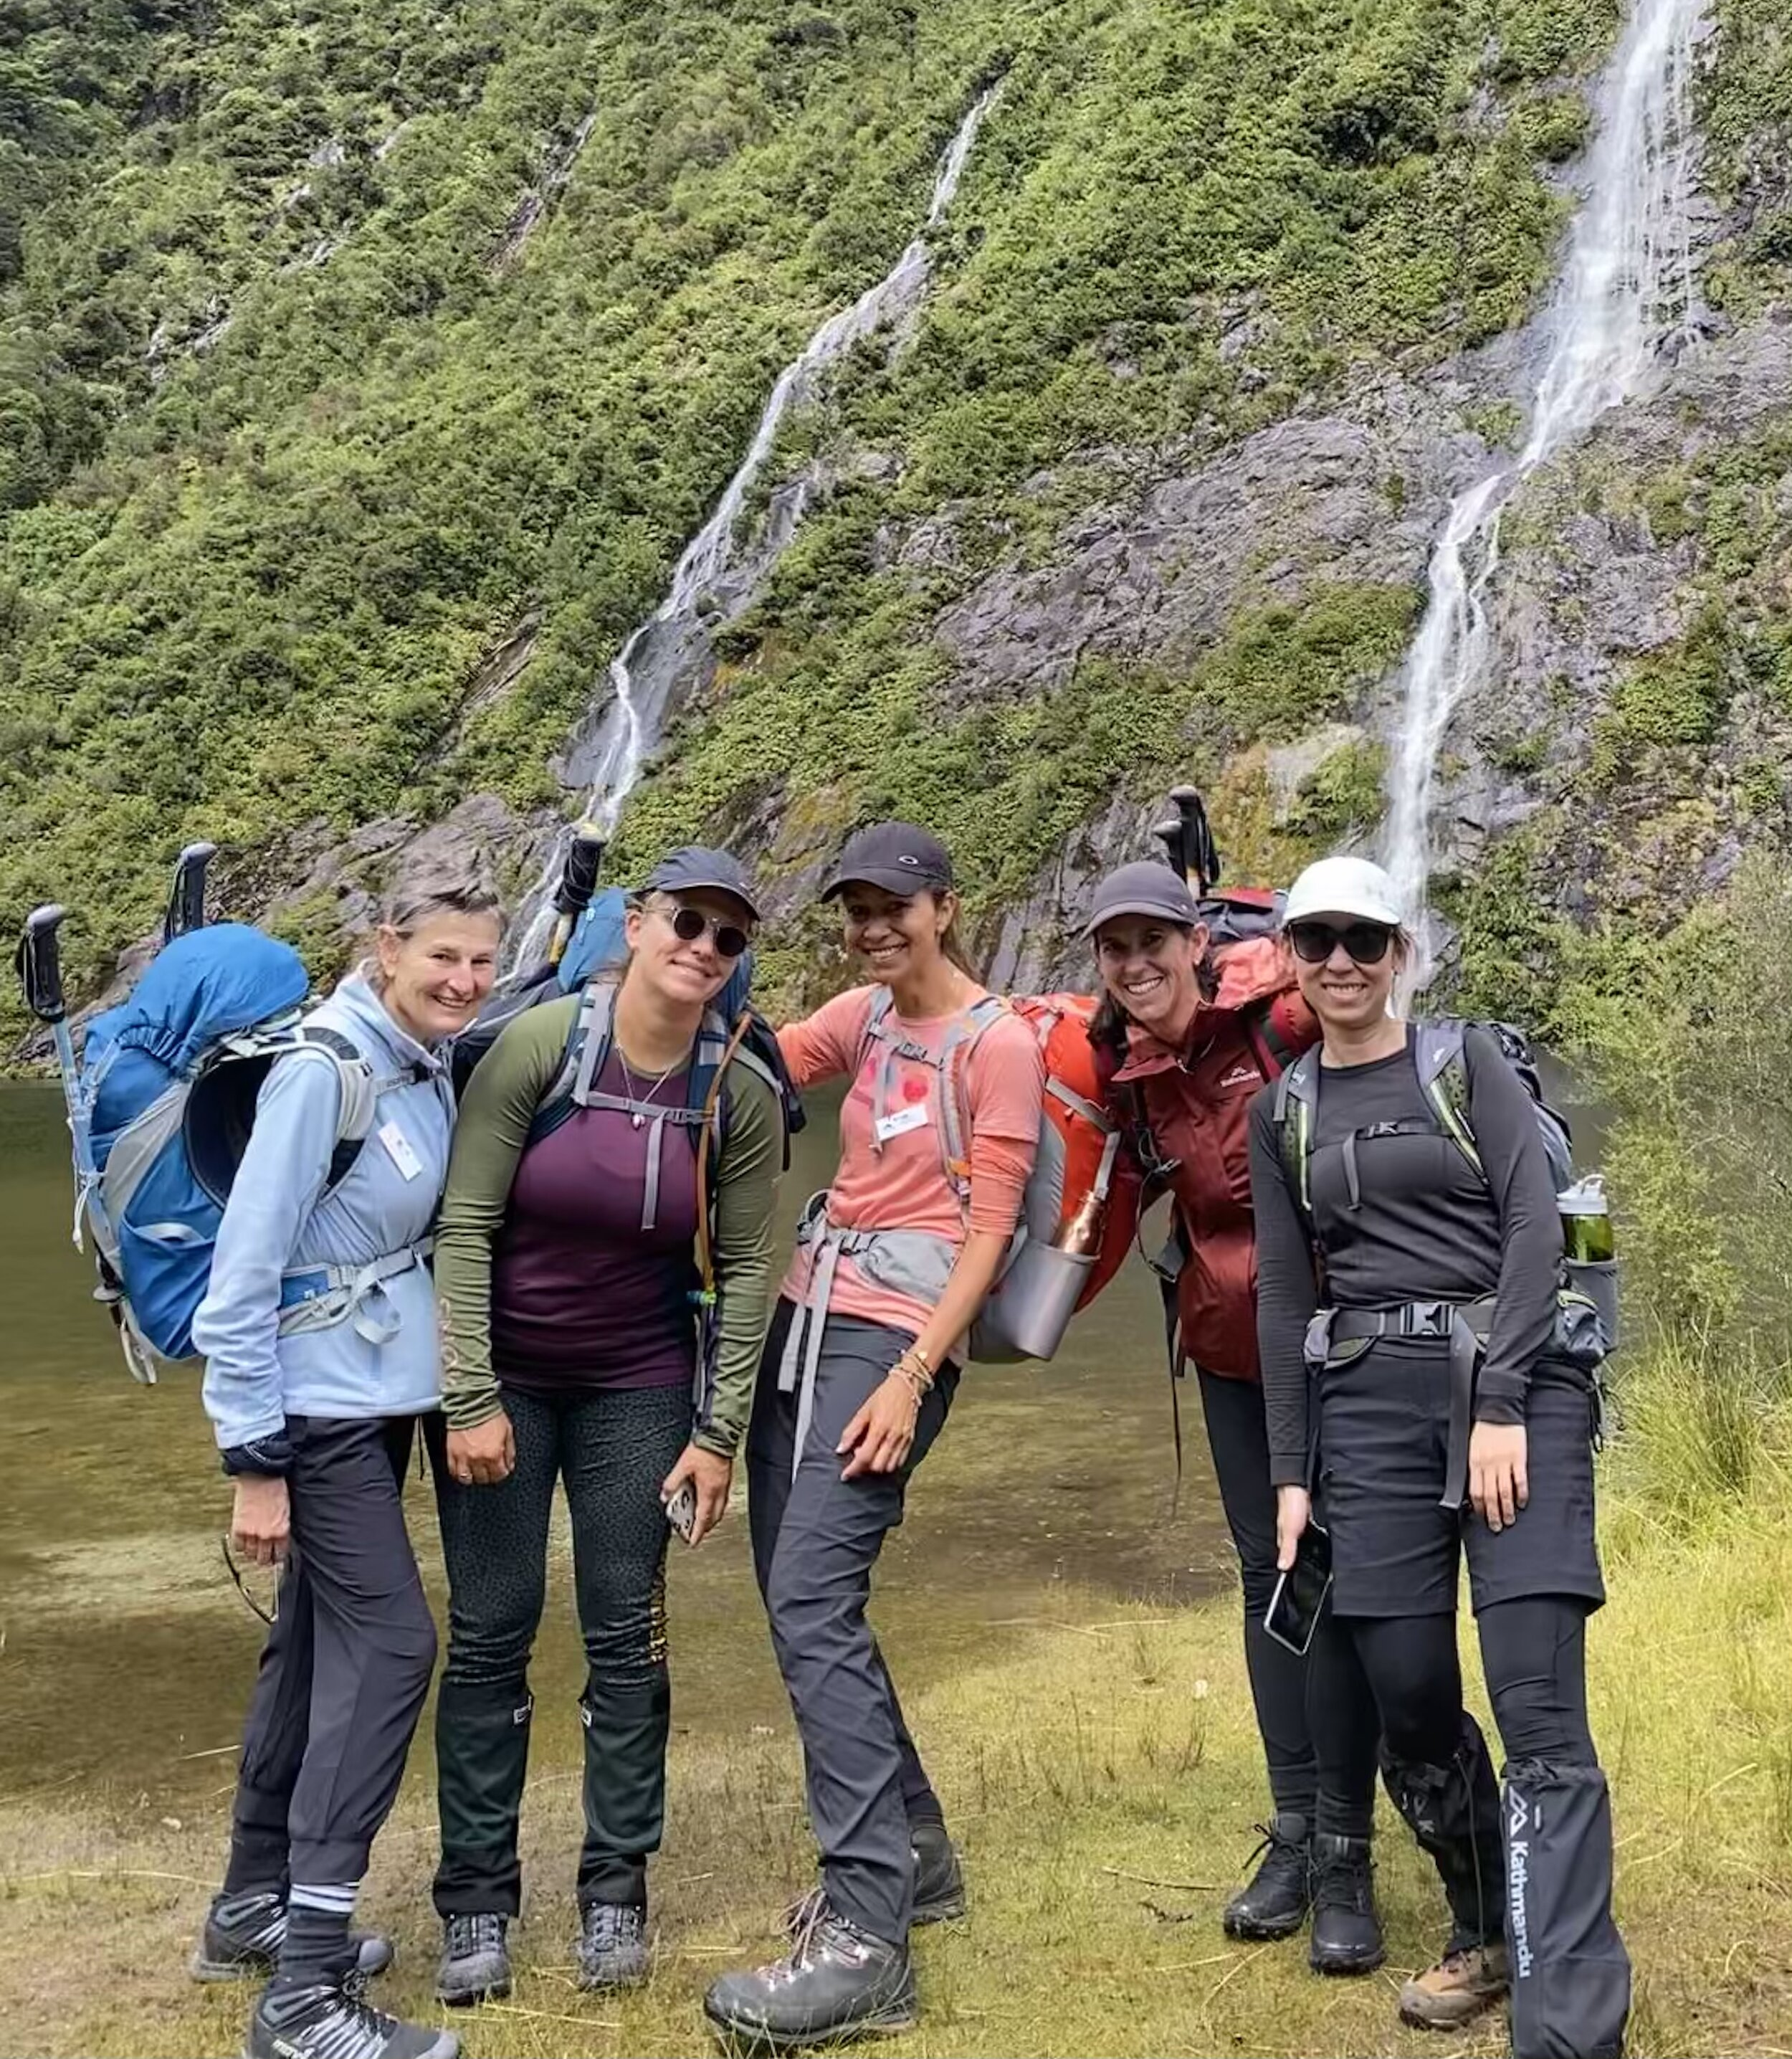 Lyzadie (in the center), with new friends she met on that adventure,  on a 4 day hike deep in Fjordland National Park.